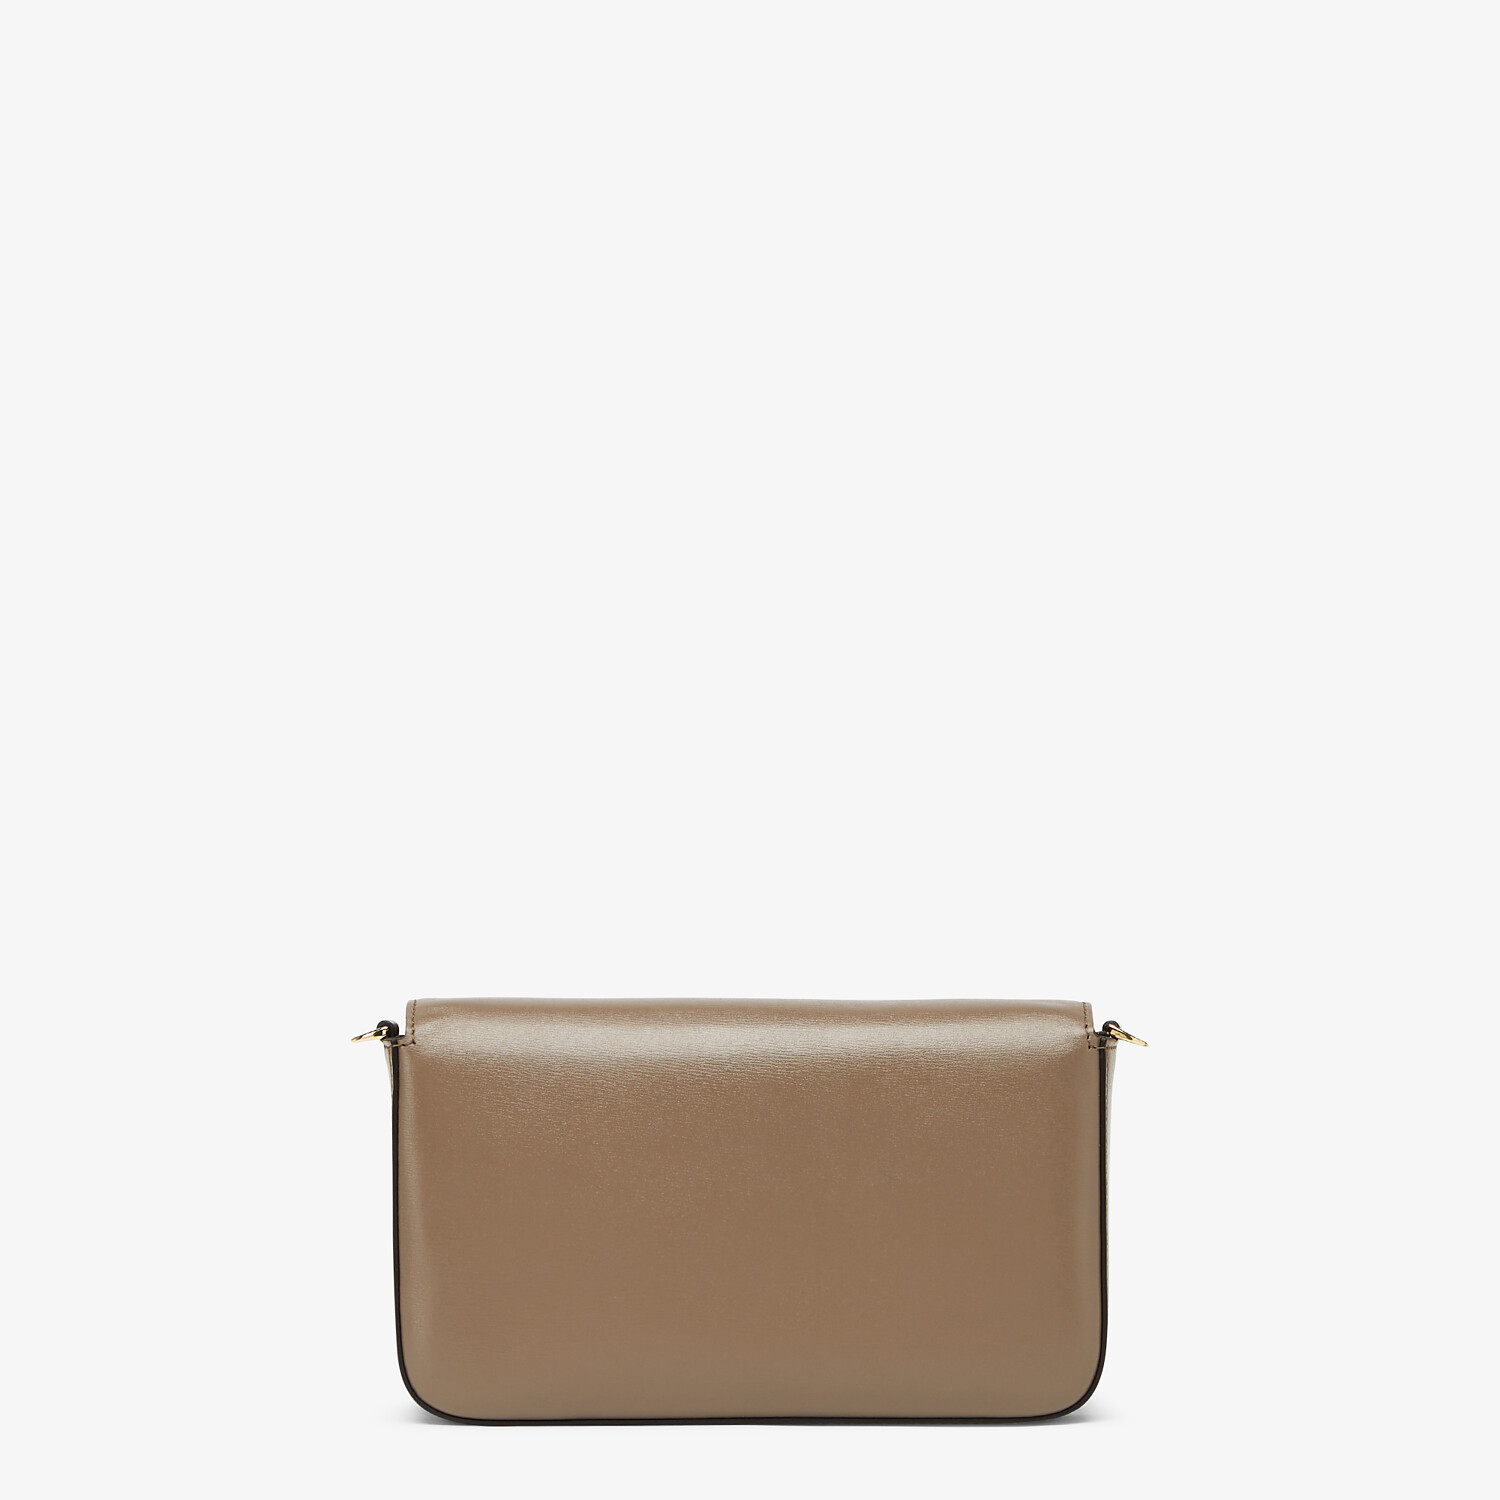 FENDI WALLET ON CHAIN WITH POUCHES - Grey leather mini-bag - view 4 detail